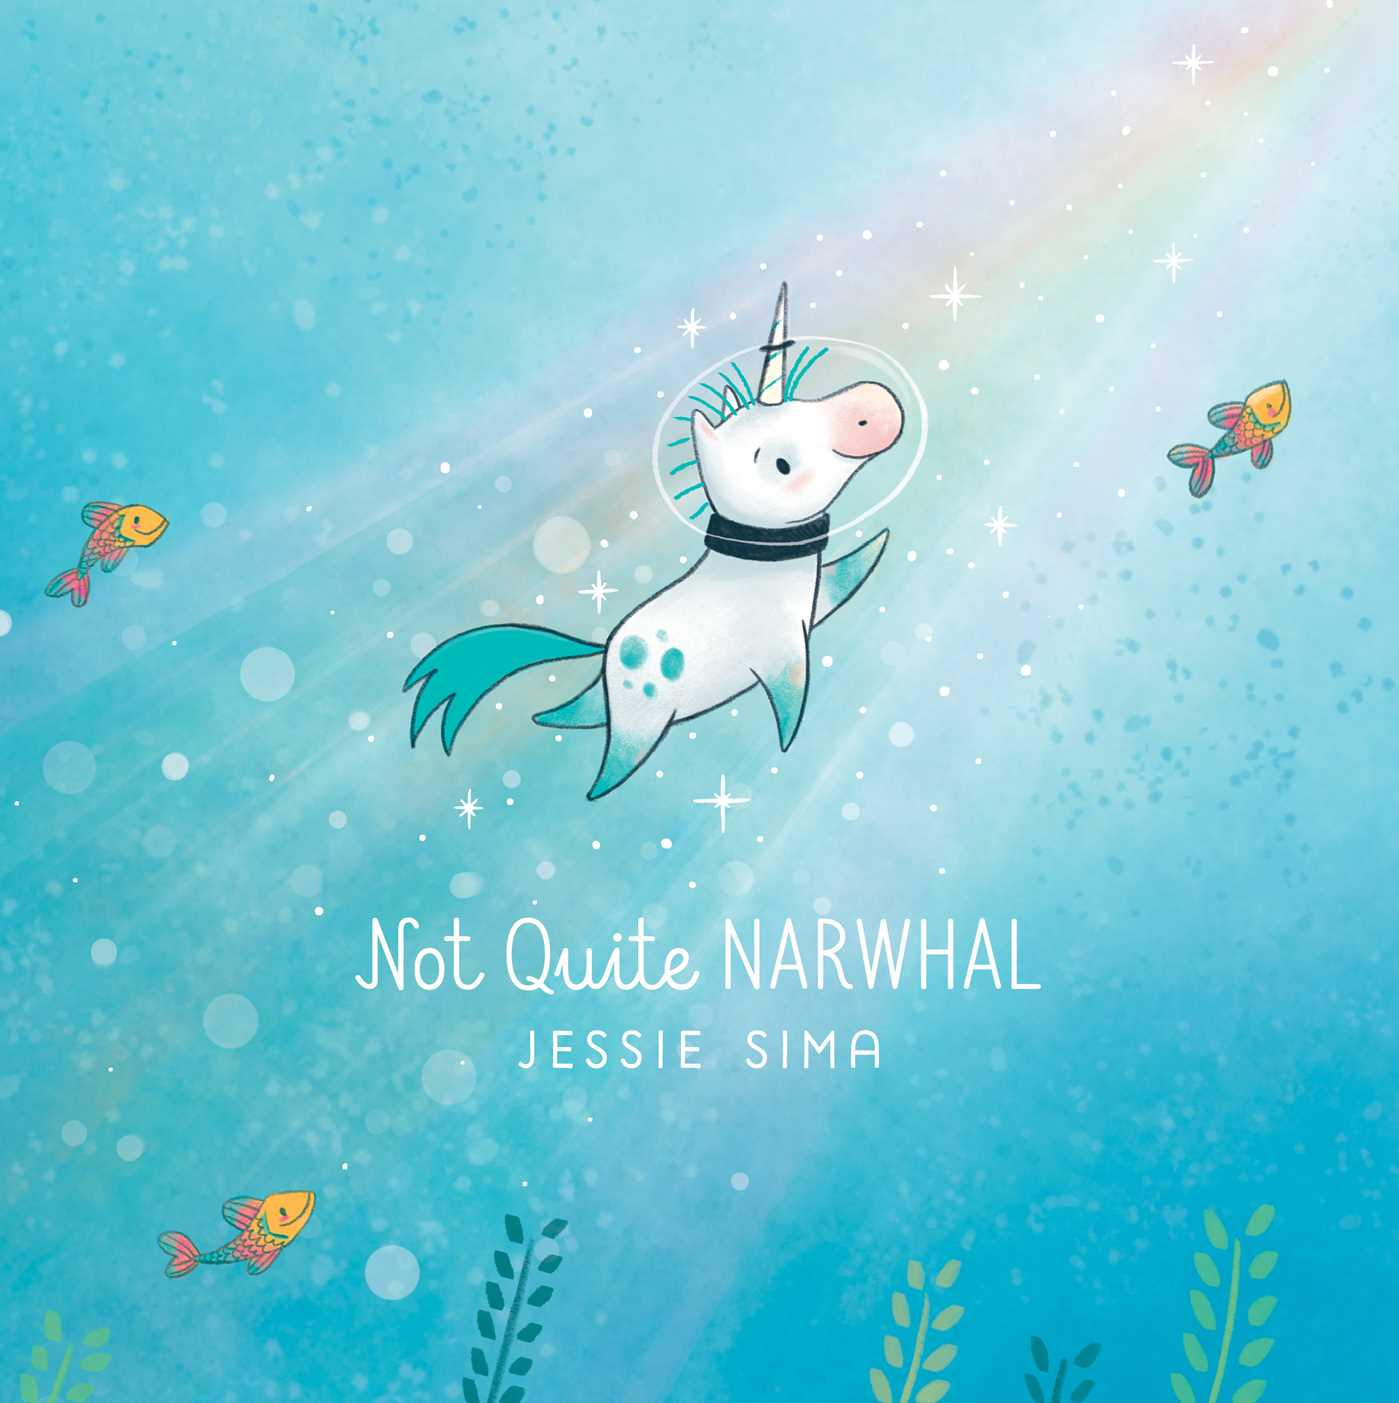 Jessie Sima's Not Quite Narwhal